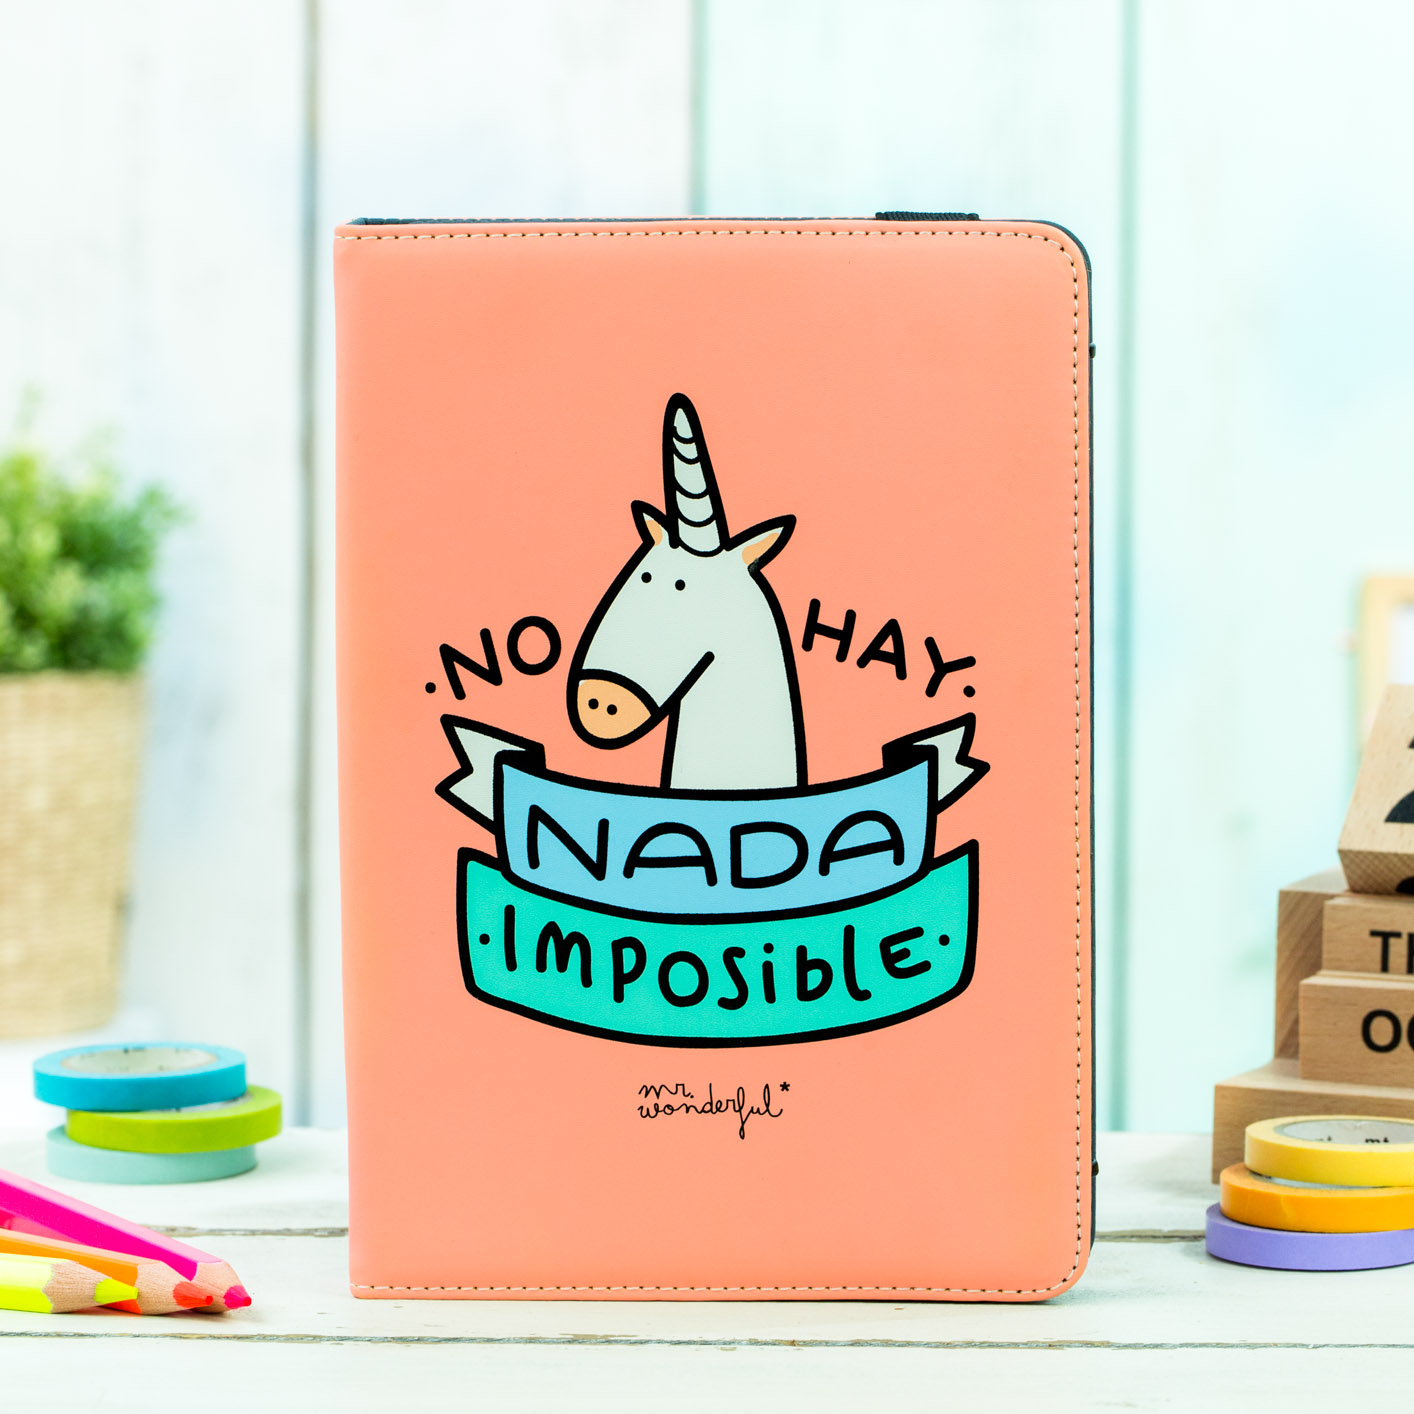 mrwonderful_MRUNI004_funda-salmon-tablet_7-7,9_no-hay-nada-imposible-14